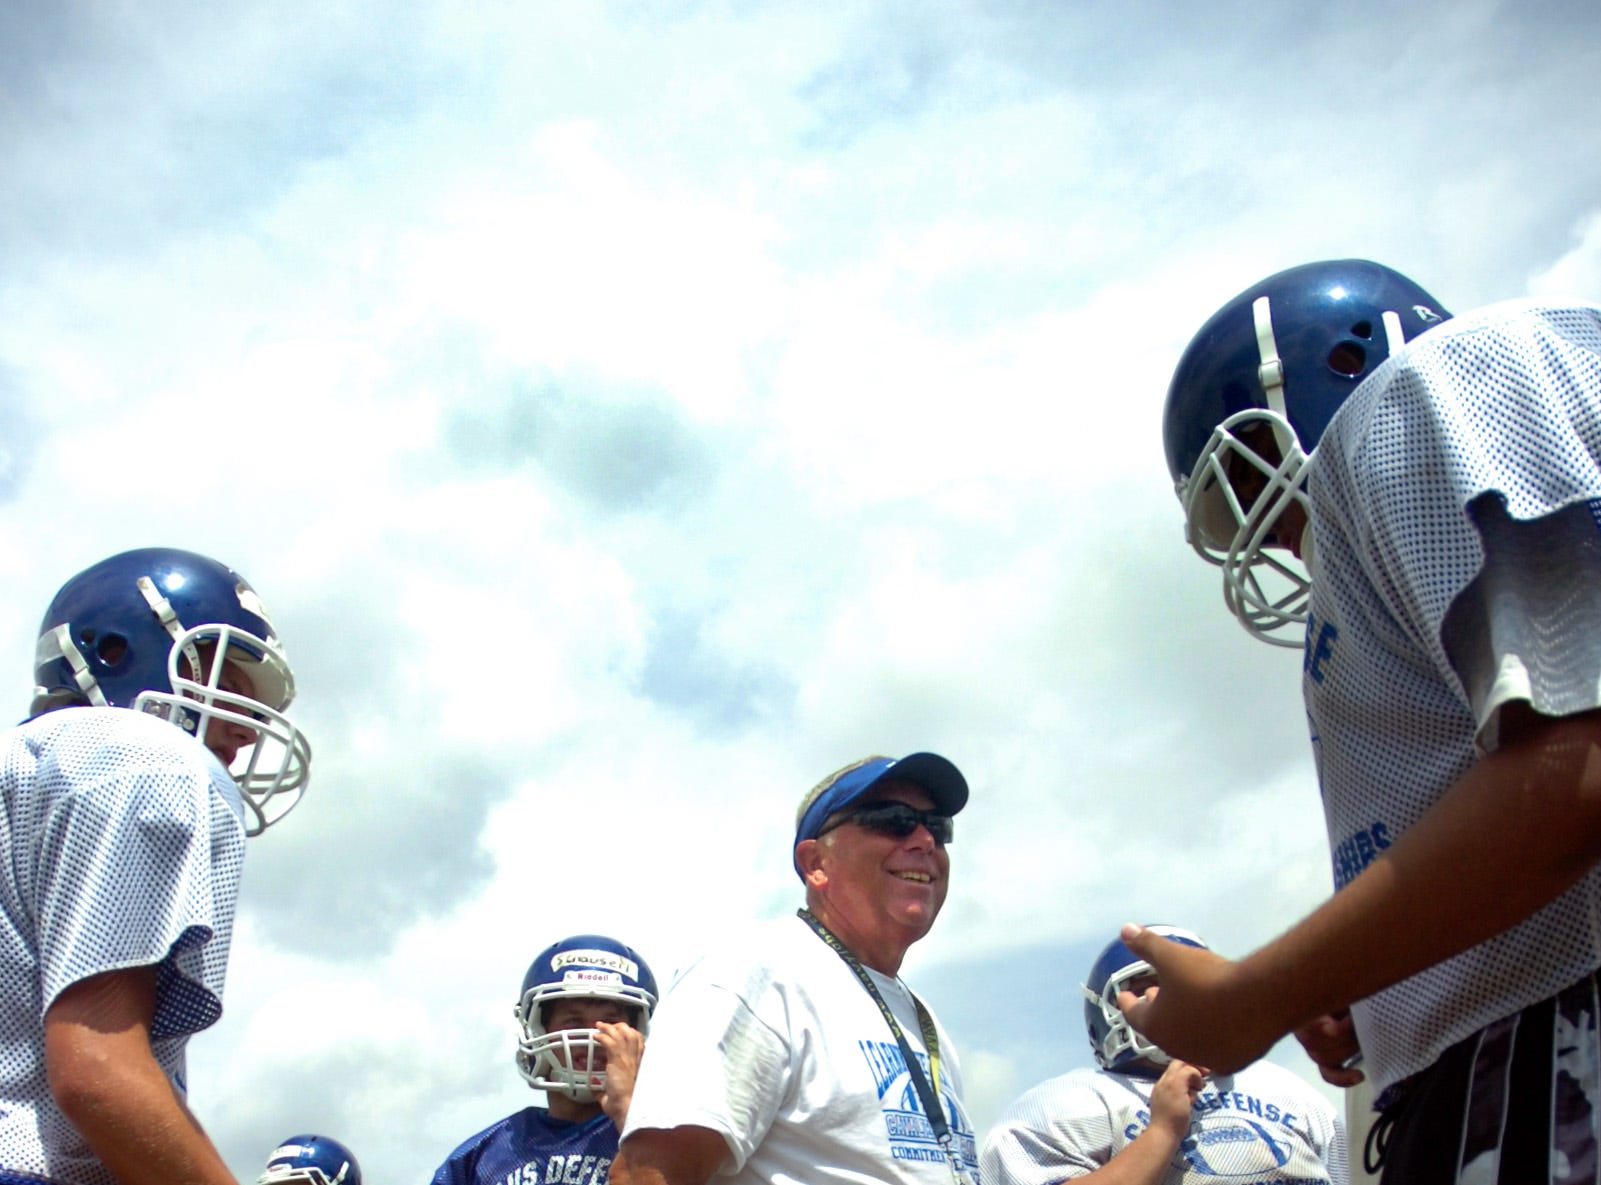 Chillicothe High School Head Football Coach Ron Hinton talks with players during practice on Thursday, August 5, 2010 at Herrnstein Practice Field.